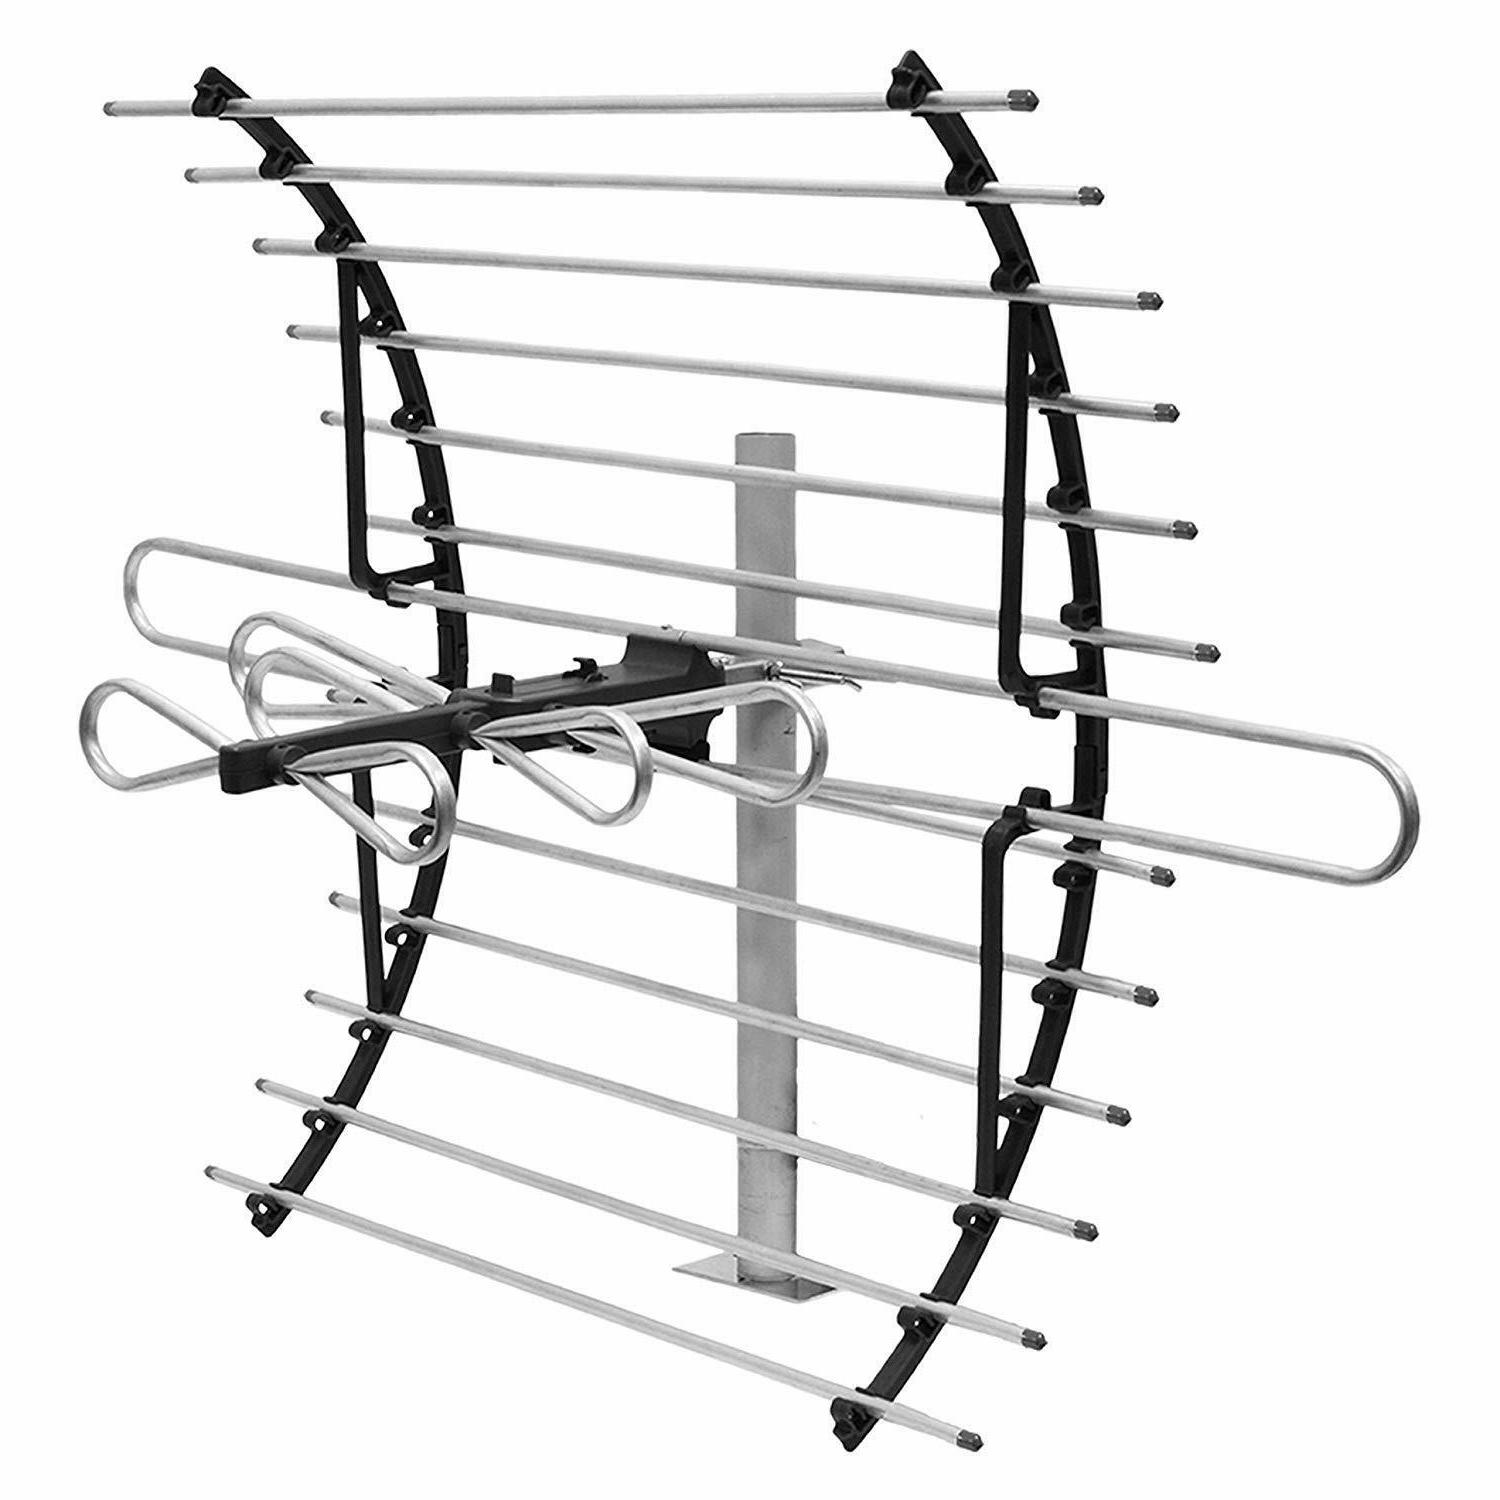 Attic Mount TV Antenna, Attic, Long Range Antenna,